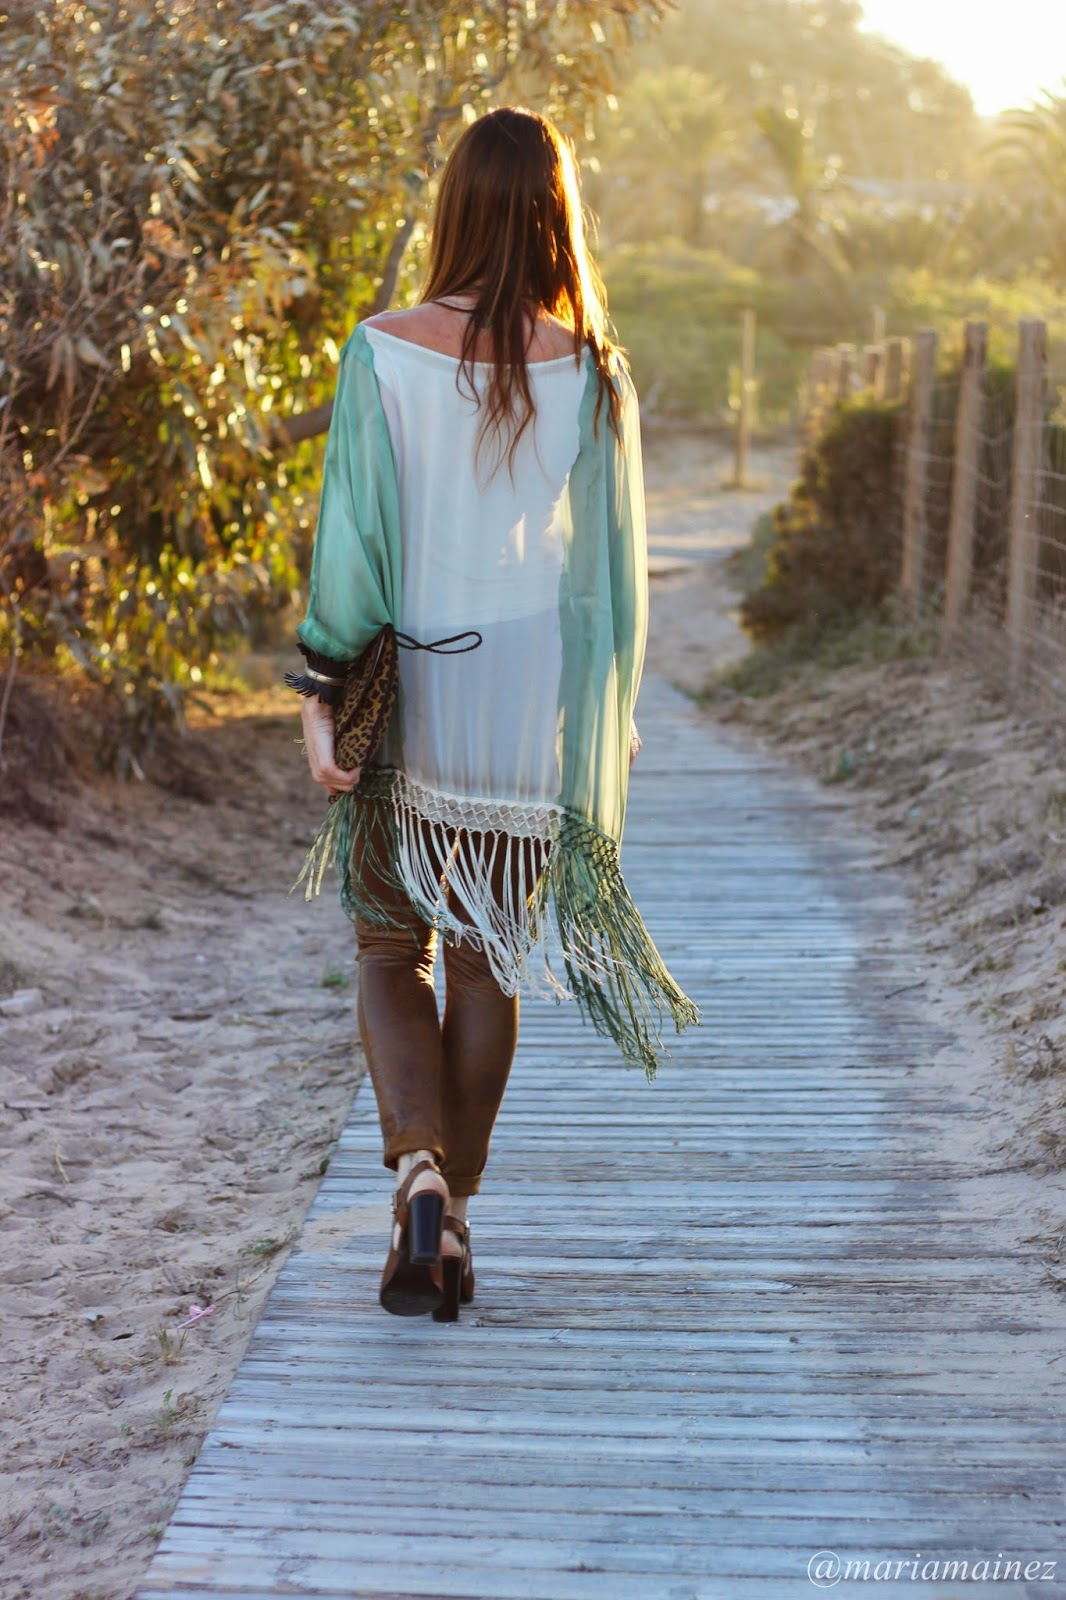 Hippie look - Caftan flecos - aires hippies - outfit verano 2015 - fashion blogger - blogger alicante